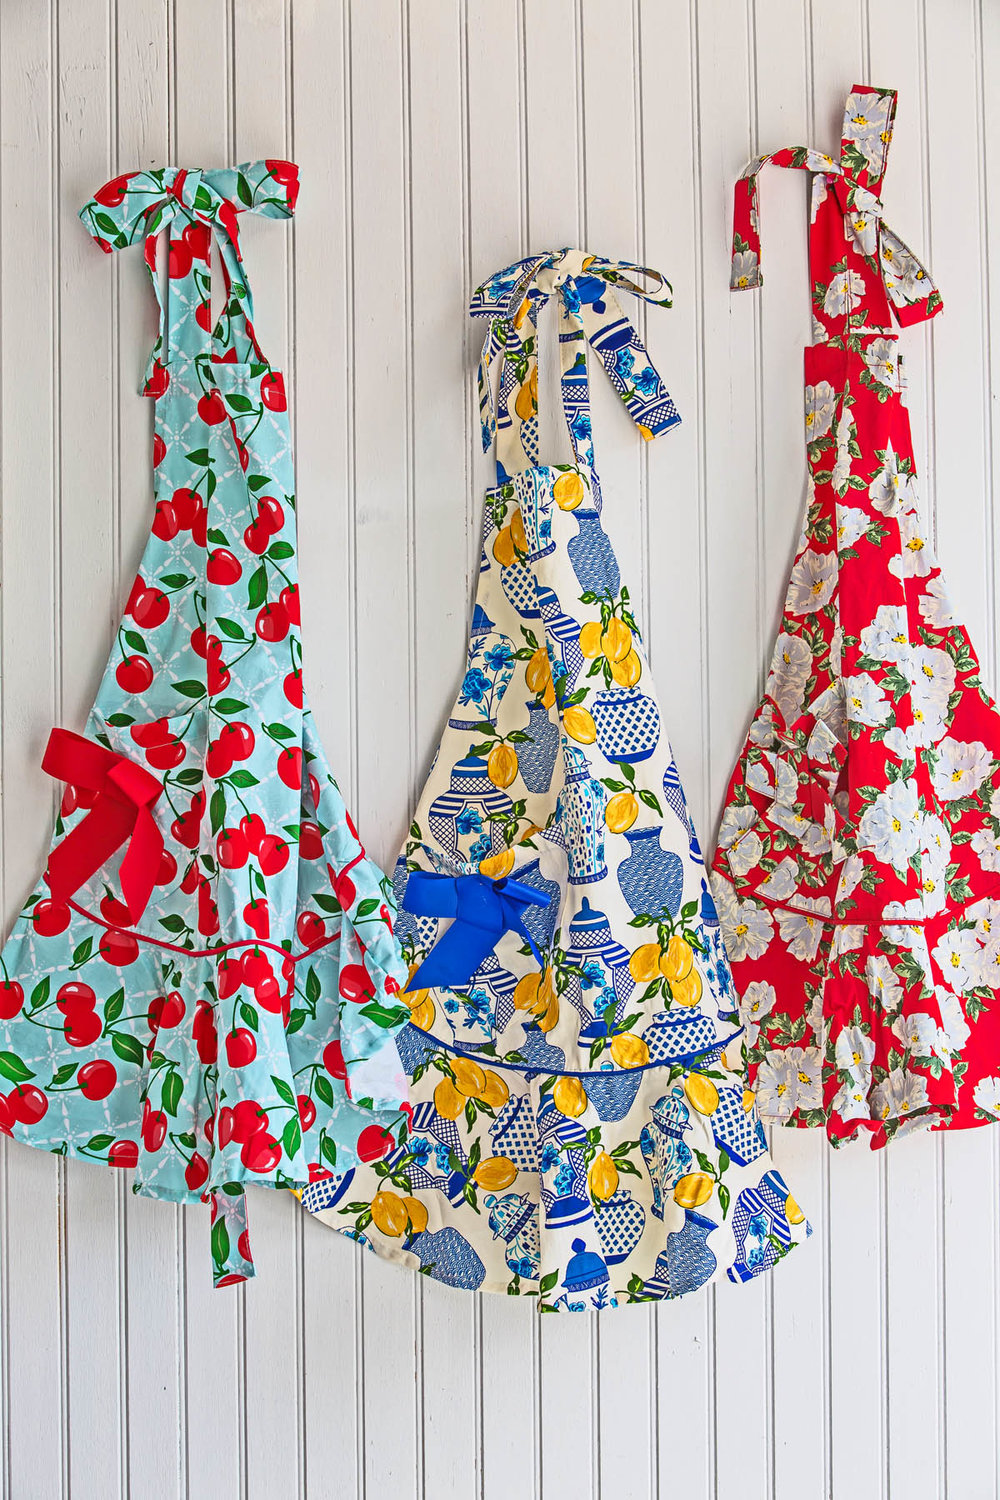 Aprons By Ric Gilson